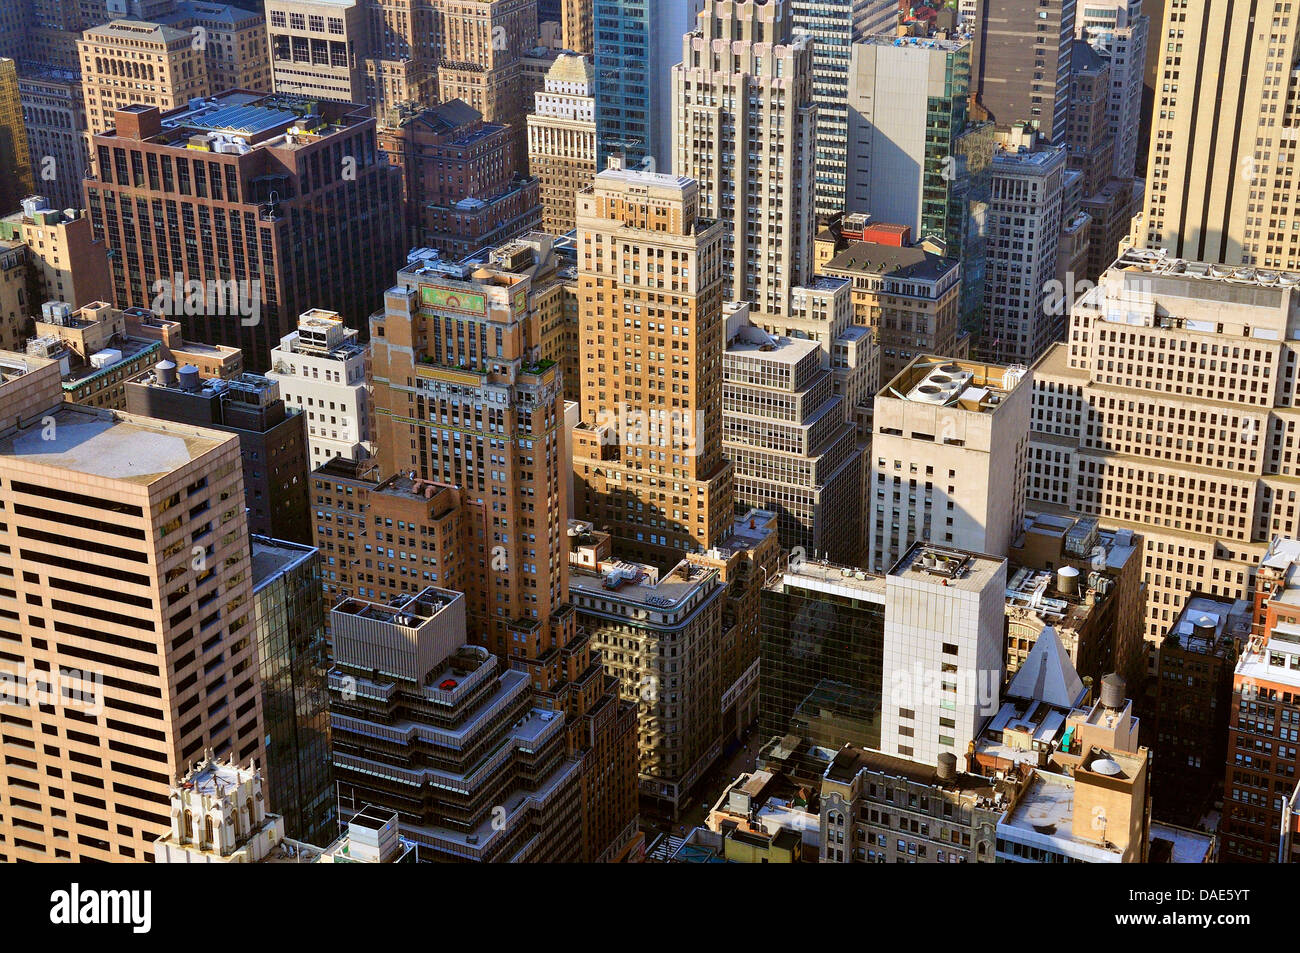 panoramic view from the observation deck 'Top of the Rock' of the Rockefeller Center over Downtown Manhattan, USA, Stock Photo